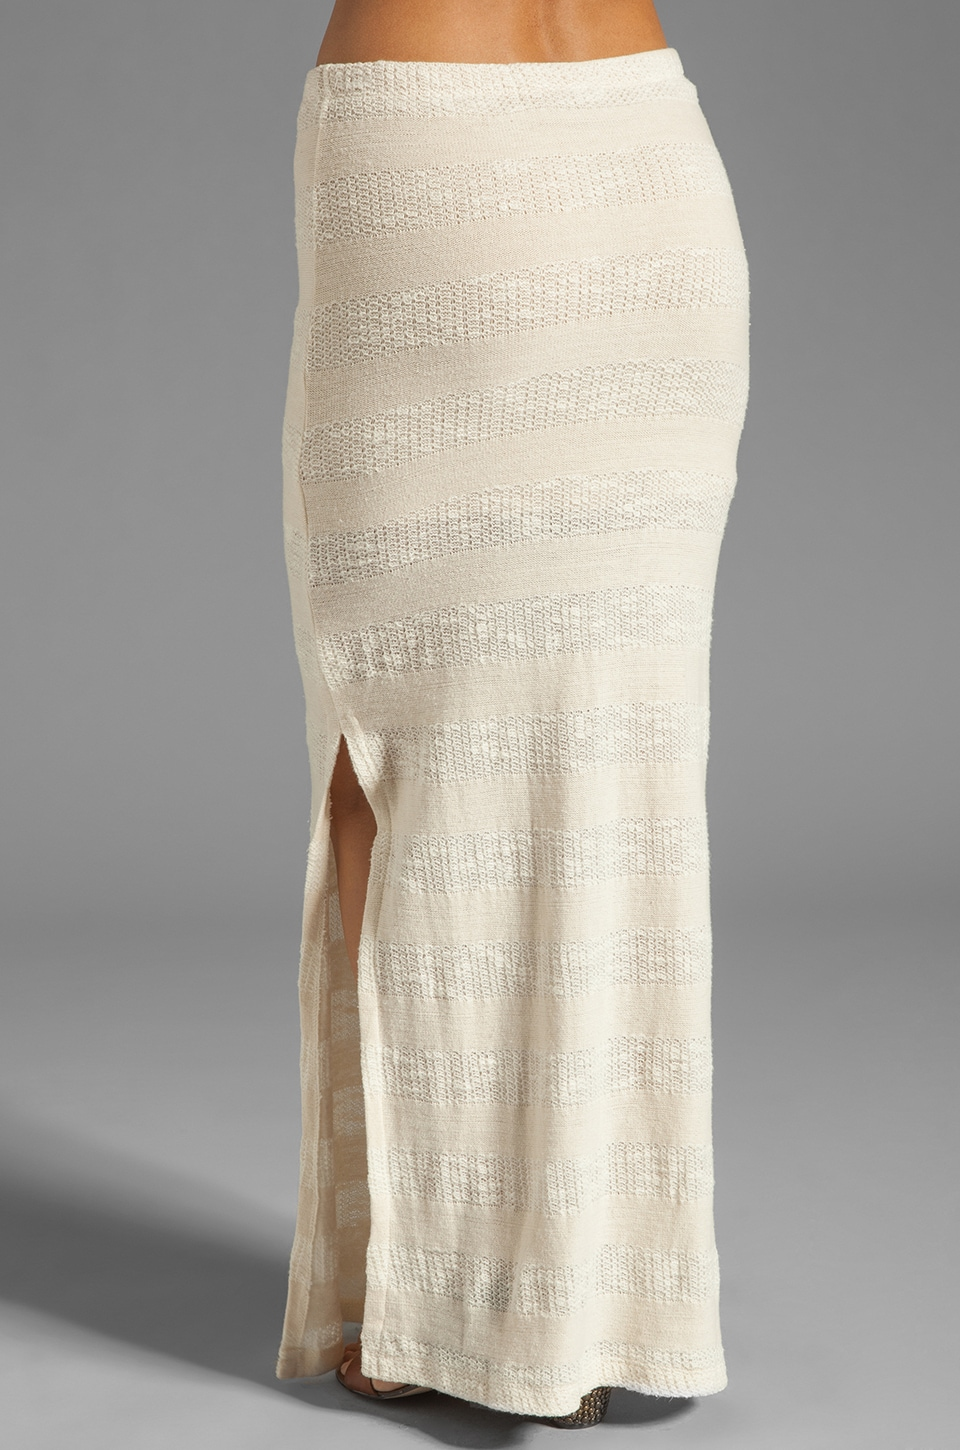 WOODLEIGH Robyn Skirt in Natural